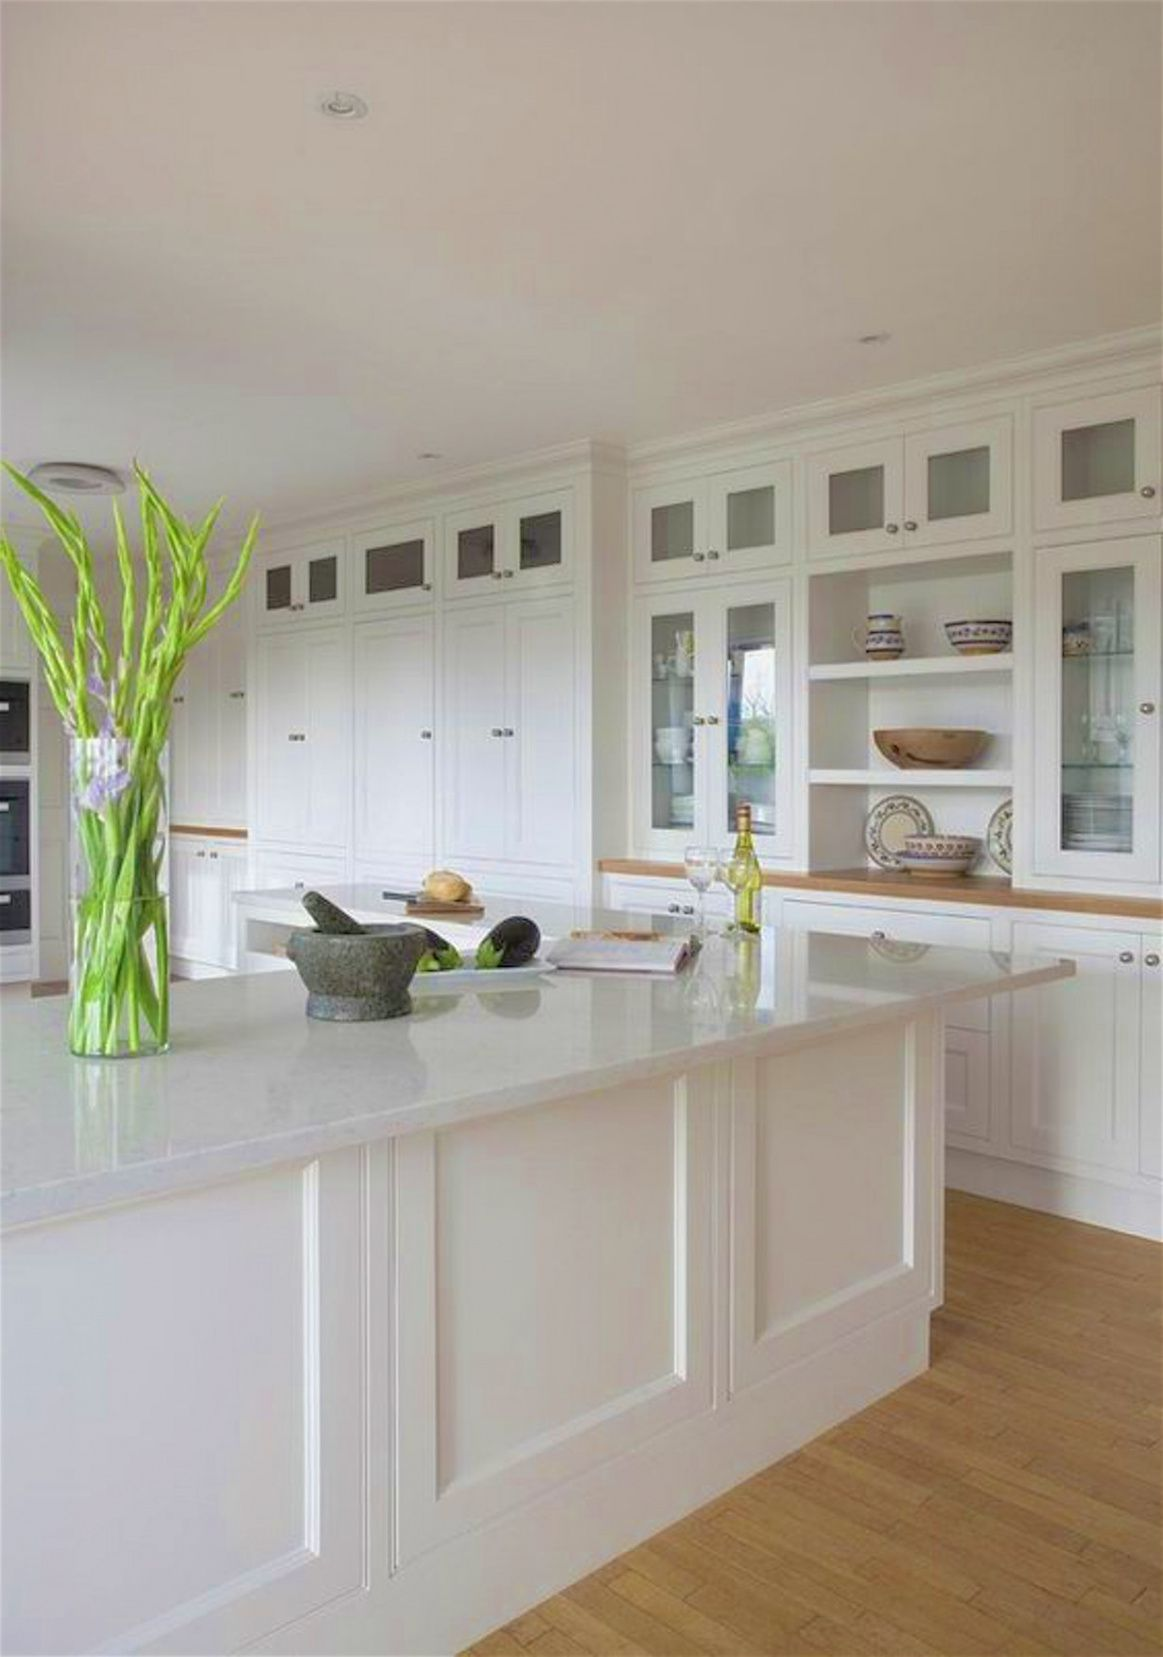 Kitchen Counter Options Solid Wood Cabinets 27 Countertop Ideas To Make Your Stand Out We Have Actually Pulled Together All Sorts Of Include In Great Layout